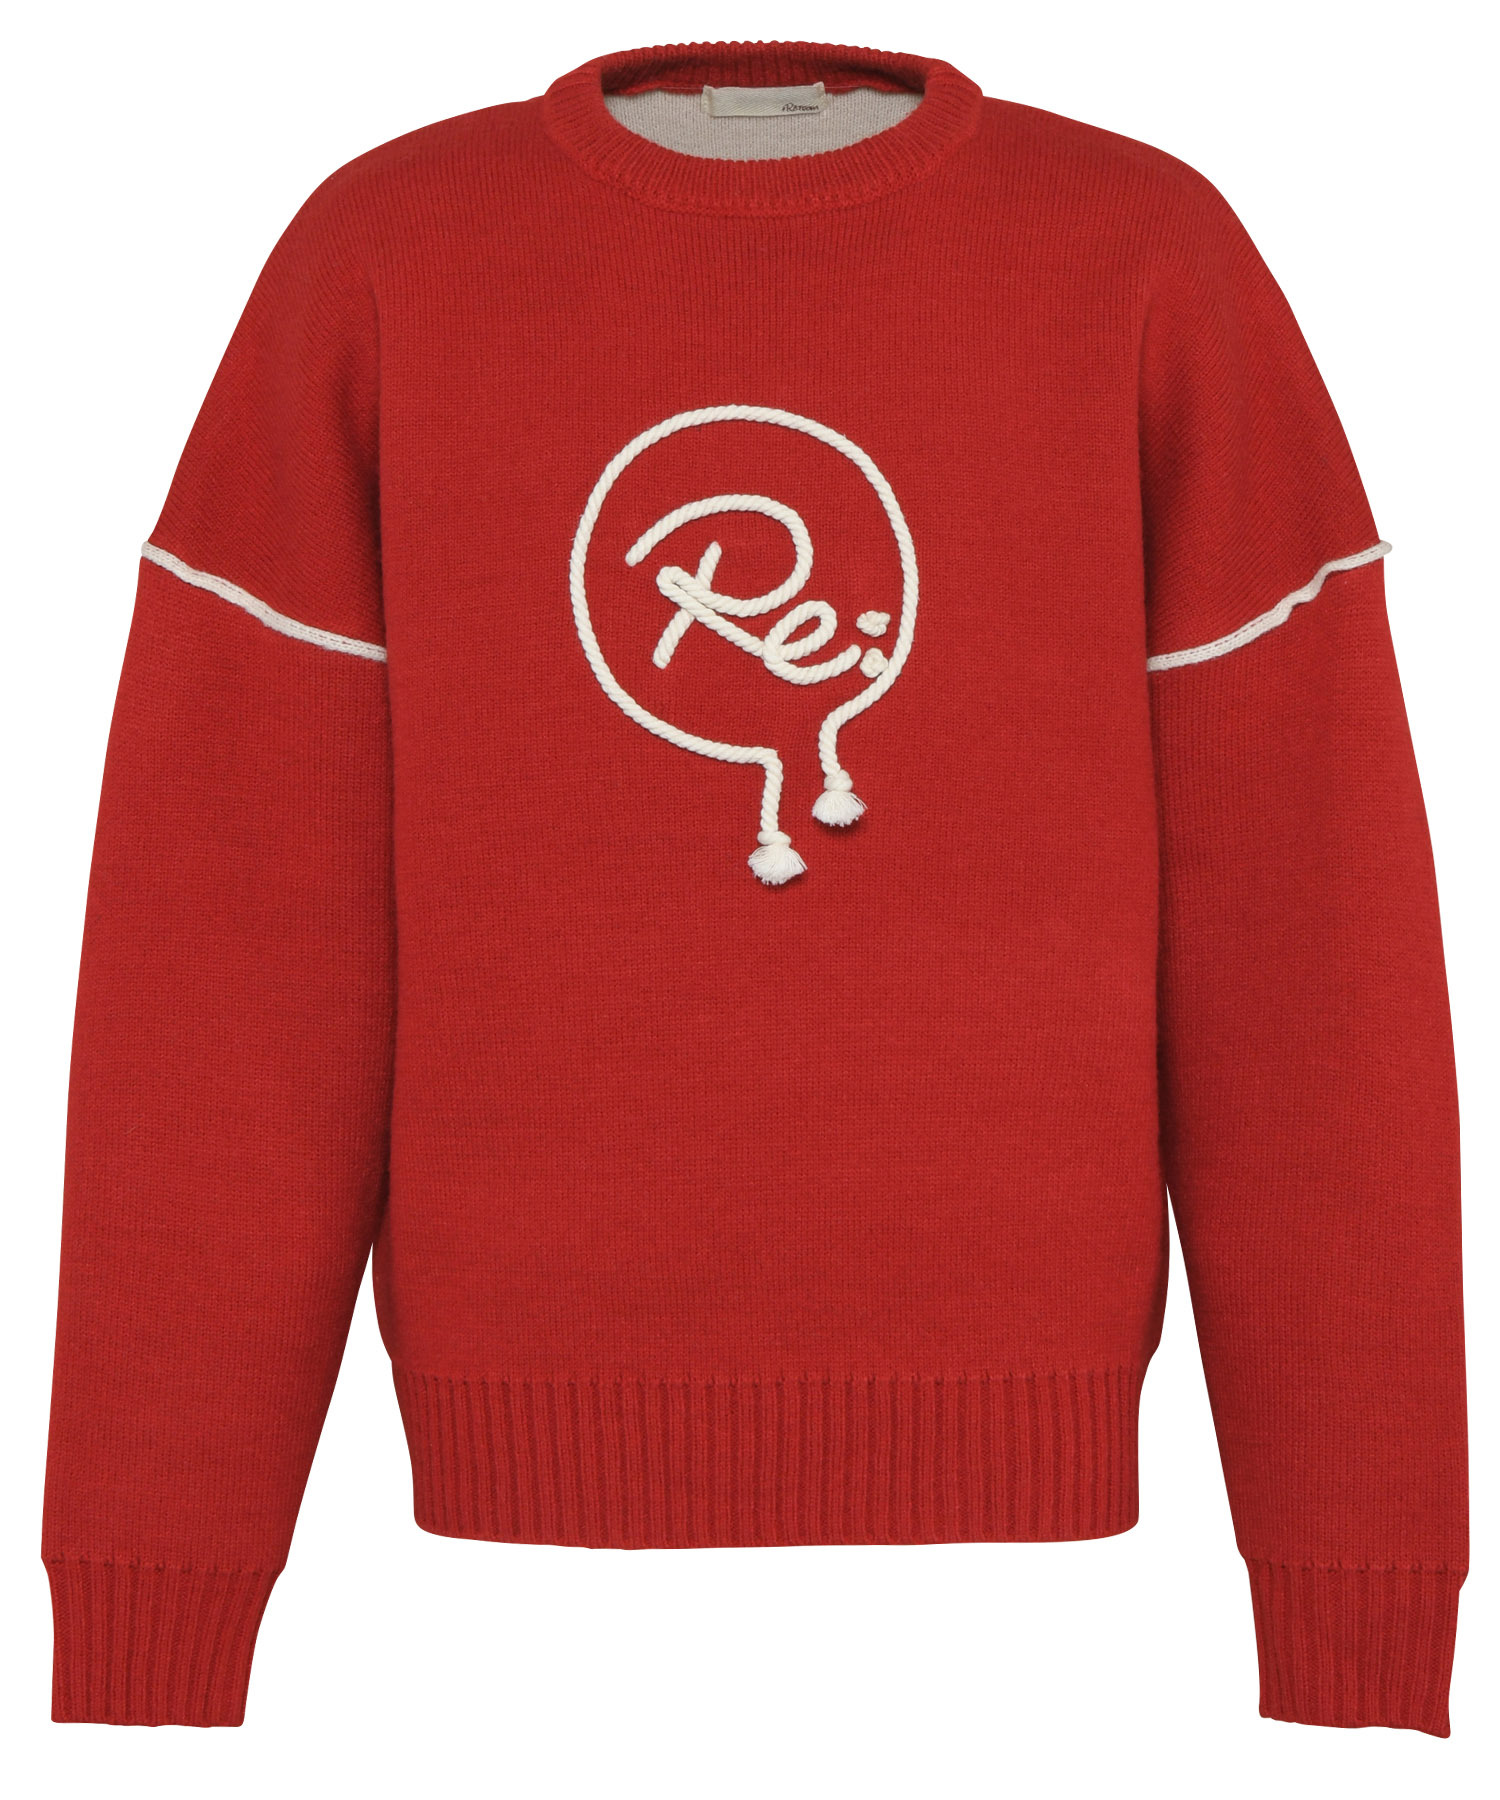 R ICON ROPE EMBROIDERY BIG CREW KNIT[REK089]